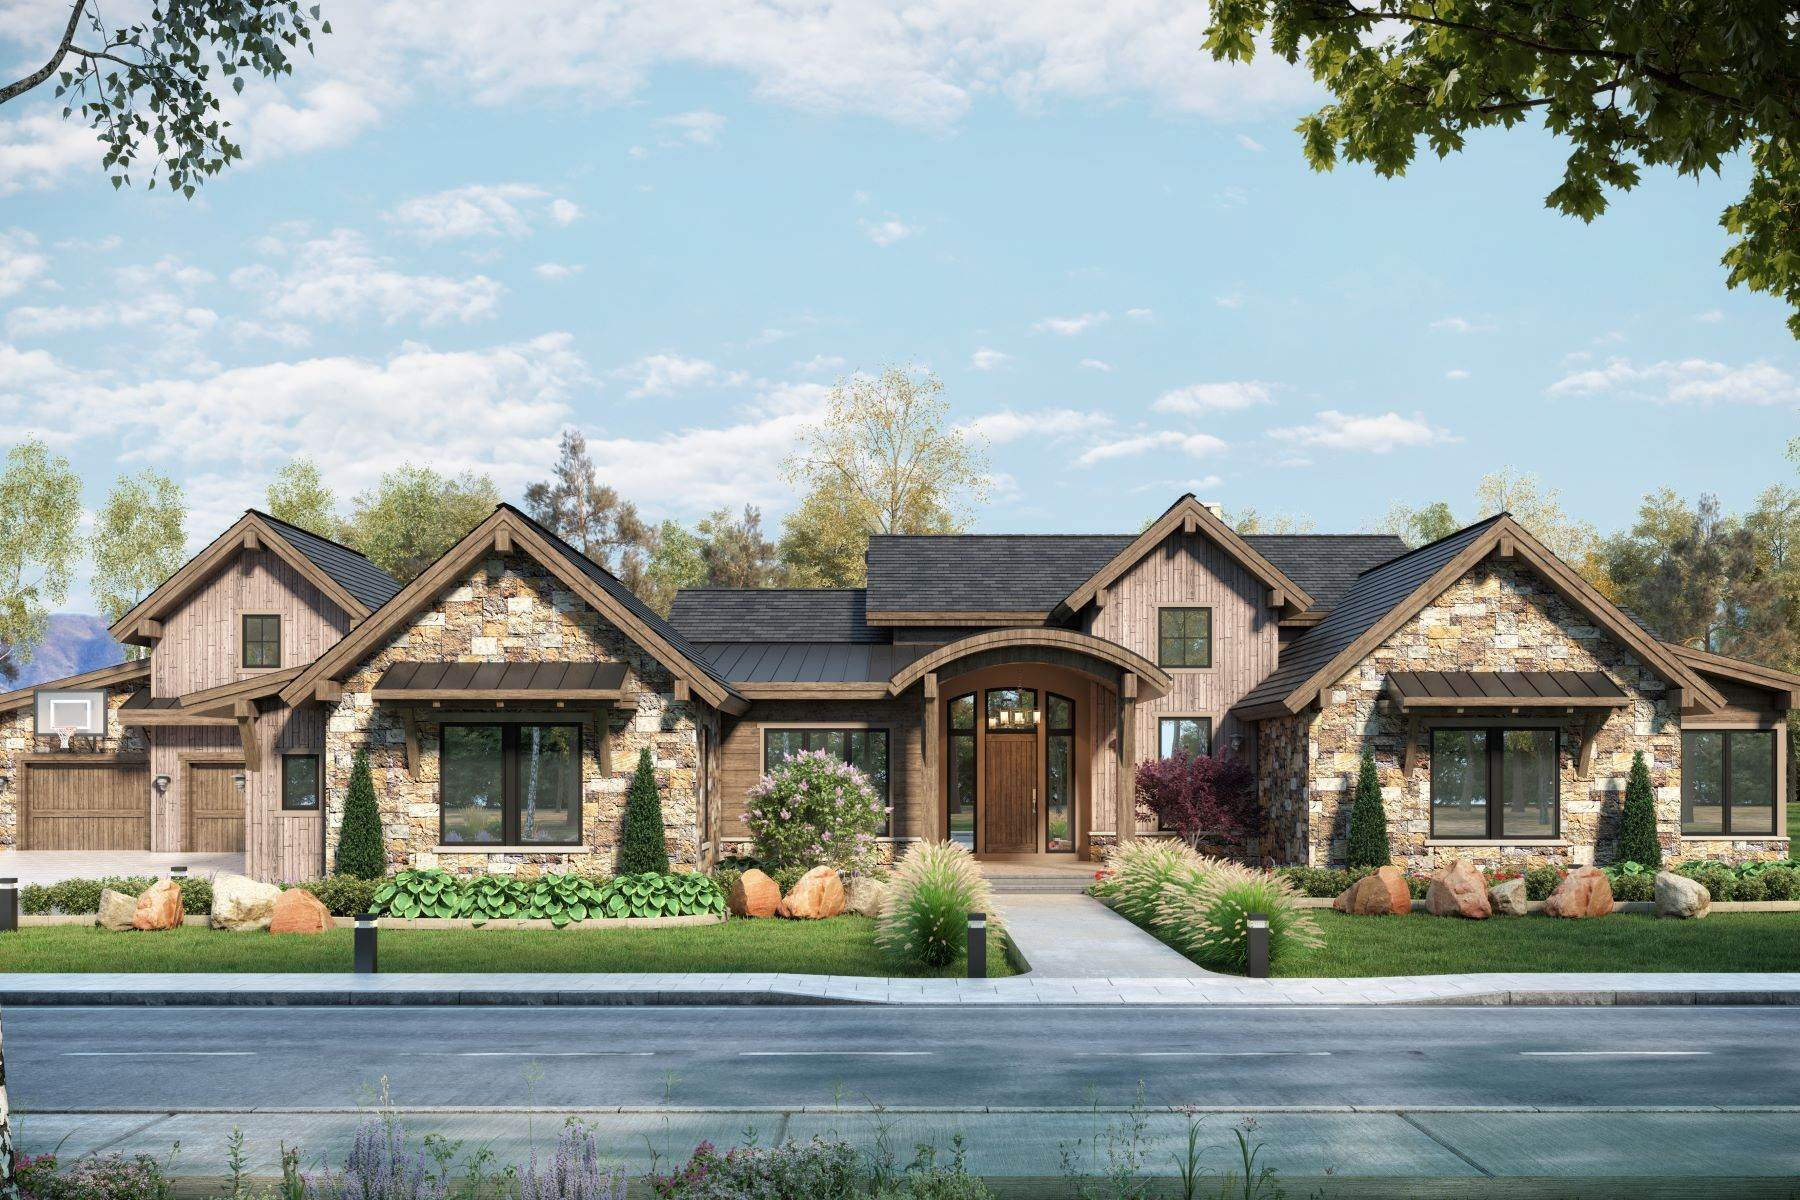 Single Family Homes for Active at 1145 Country Club Parkway, Castle Rock, Co, 80108 1145 Country Club Parkway Castle Rock, Colorado 80108 United States